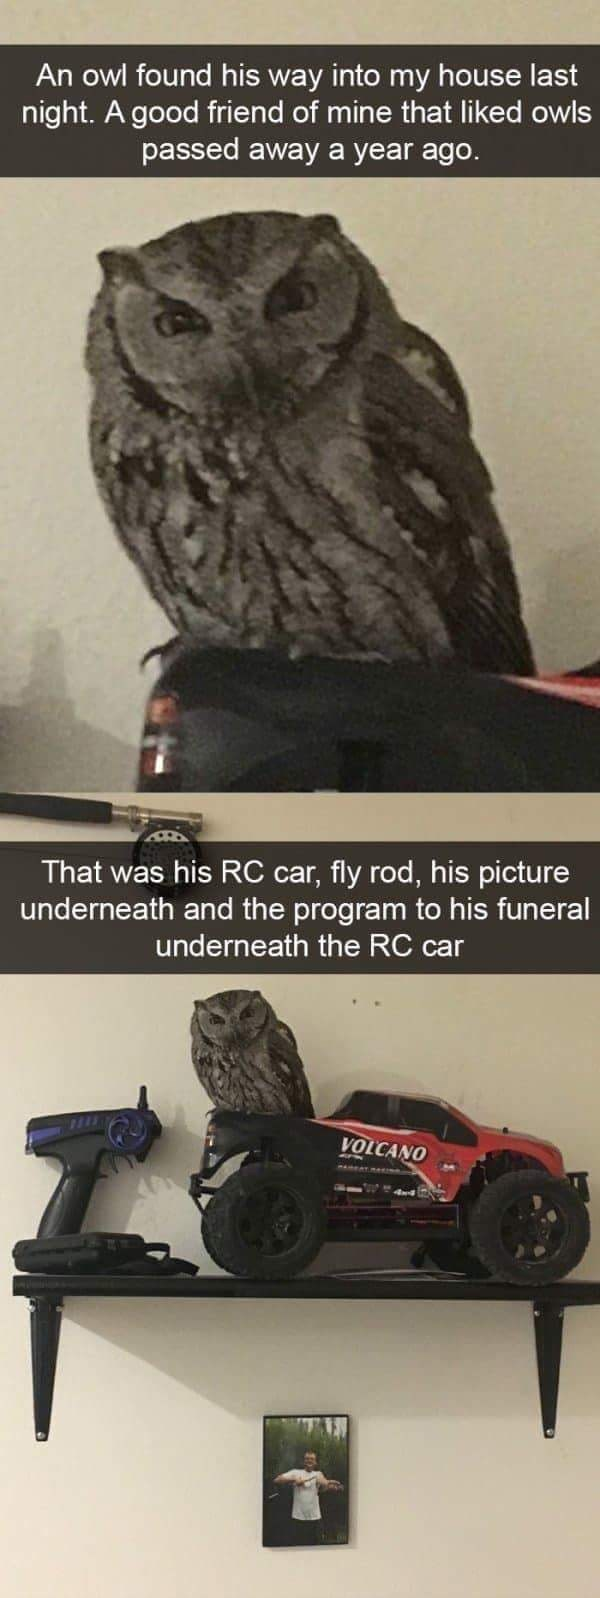 pic of an owl that flew into a persons home